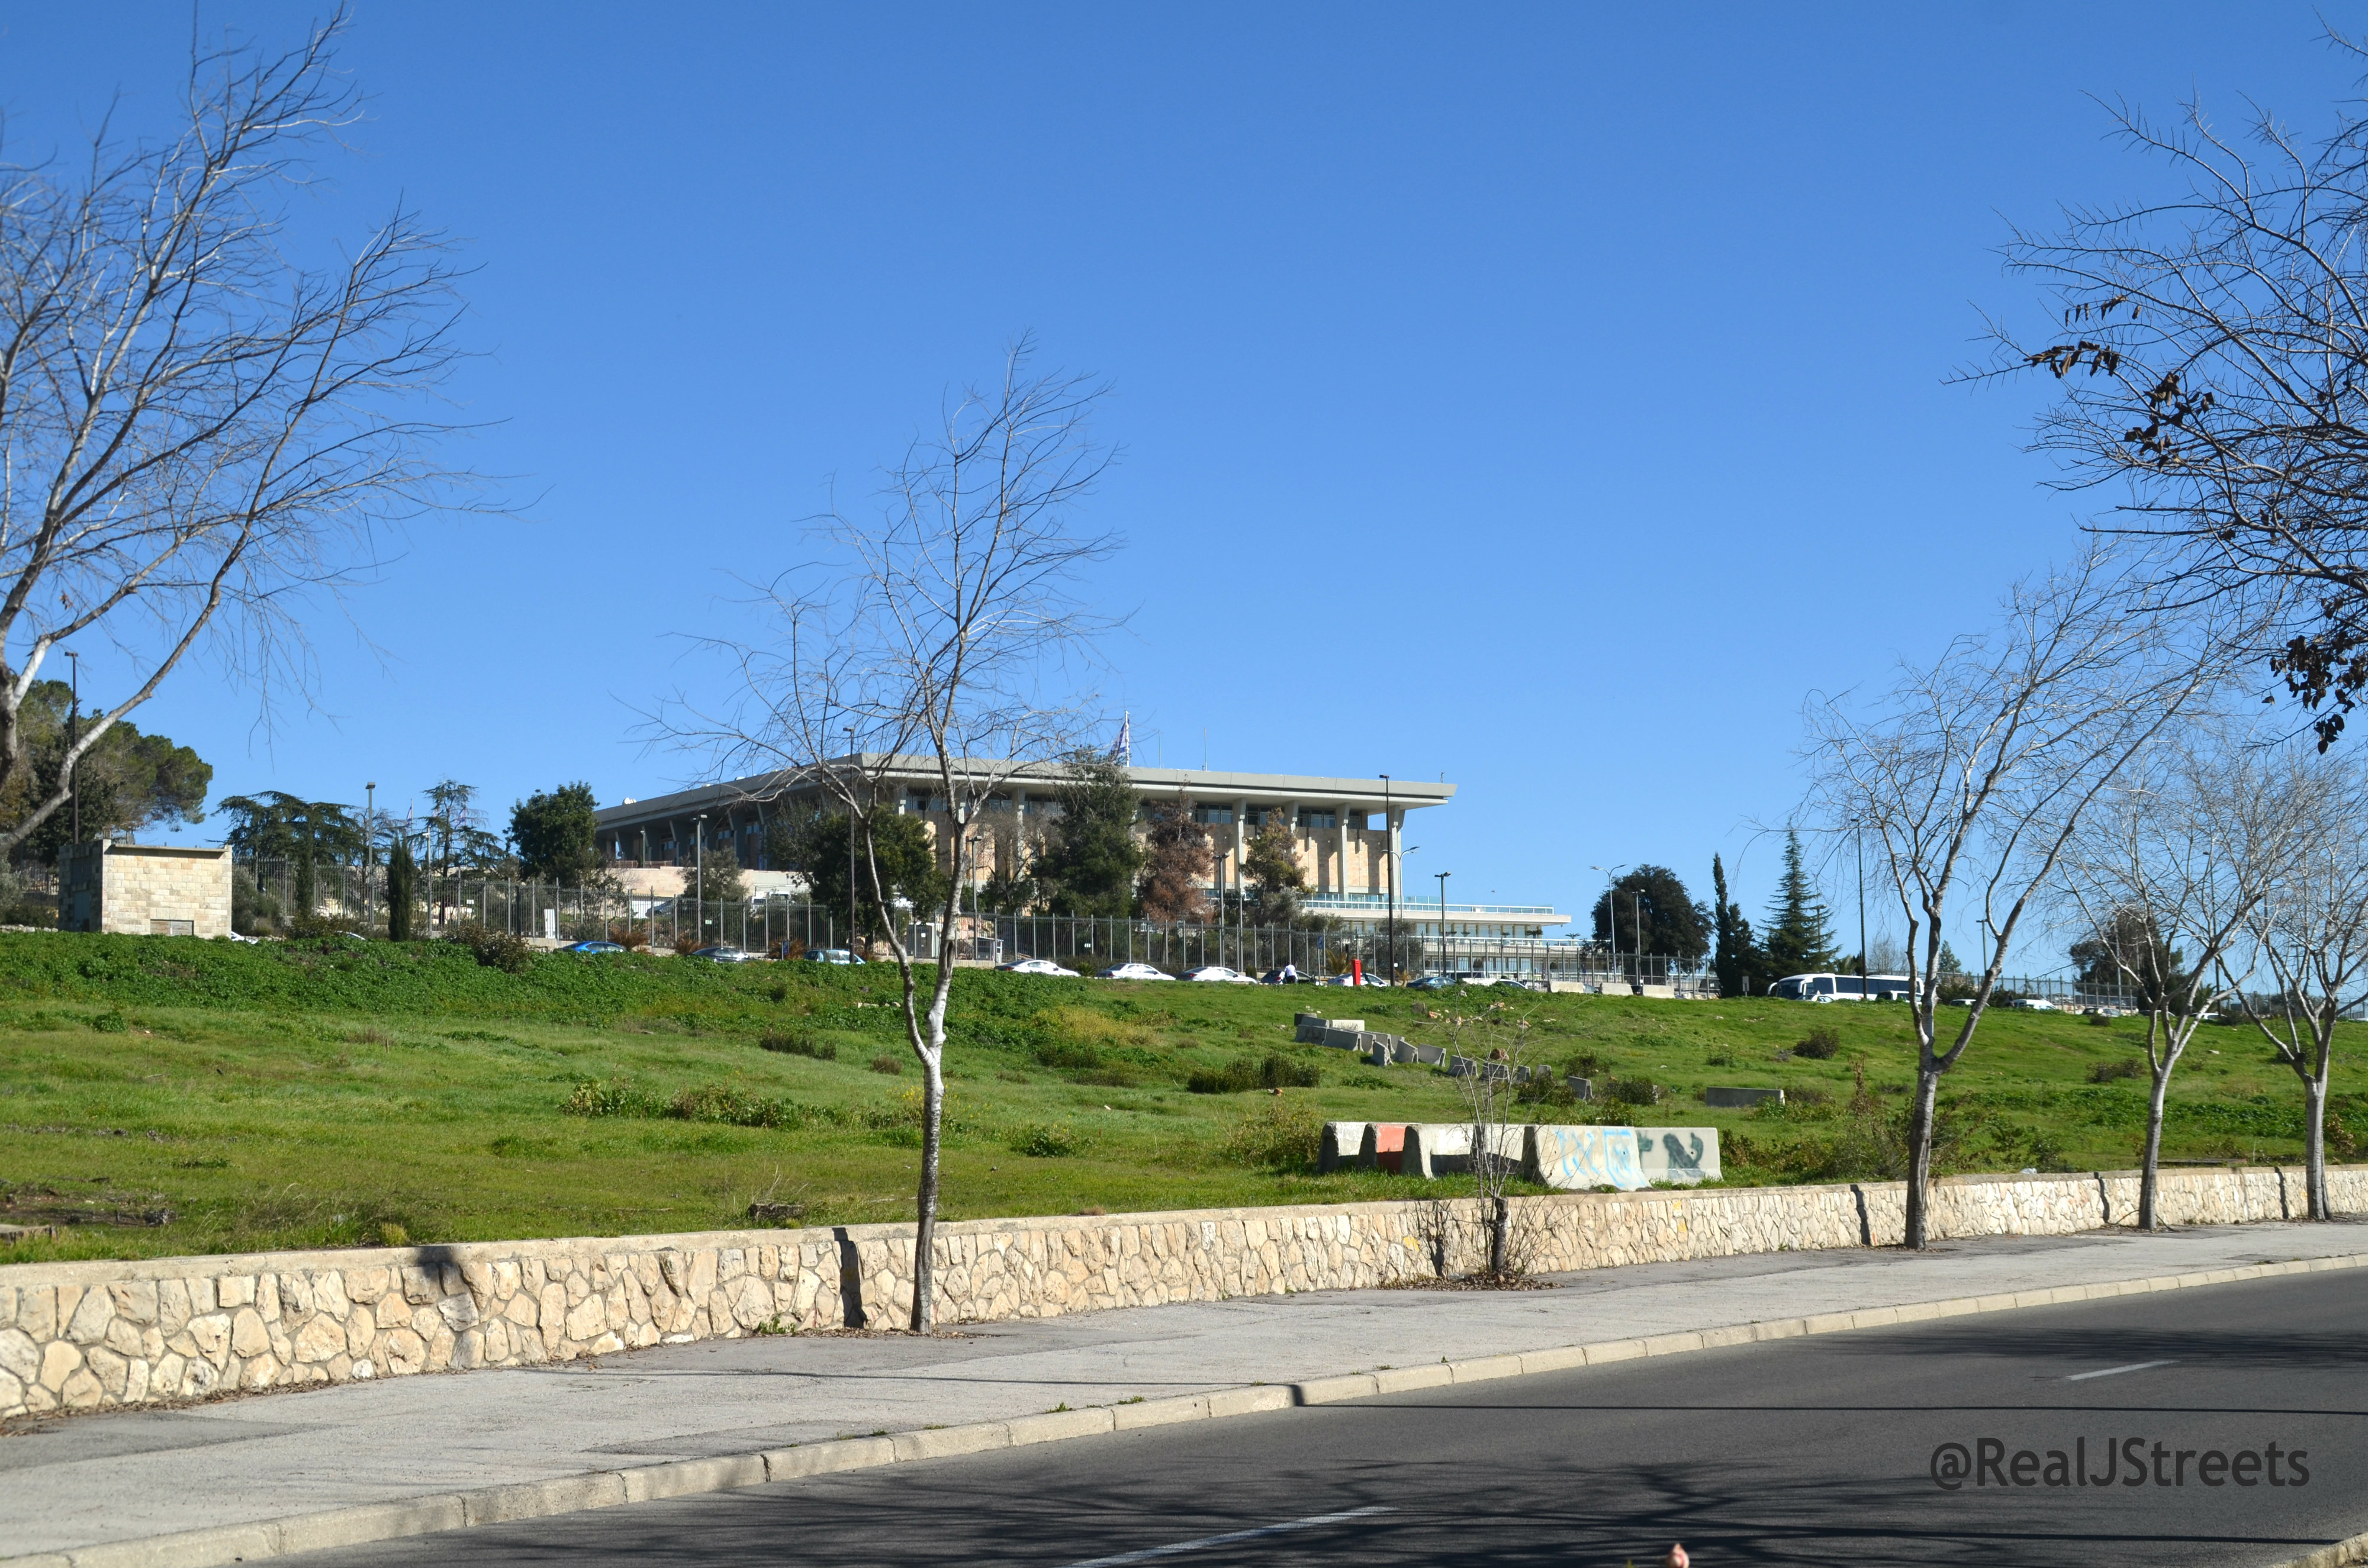 land where Israel National Library is to be built